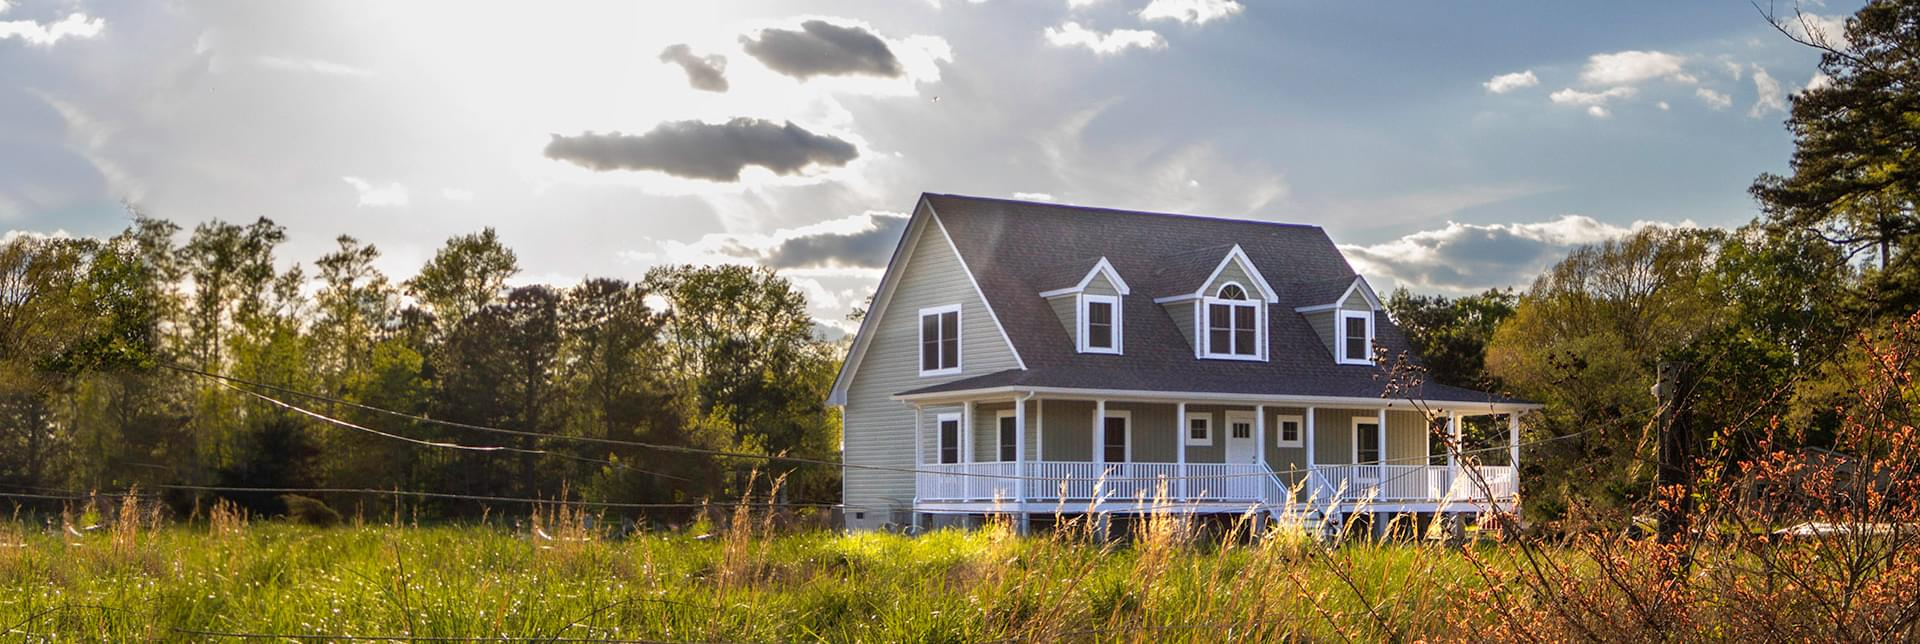 New Homes in King George County VA